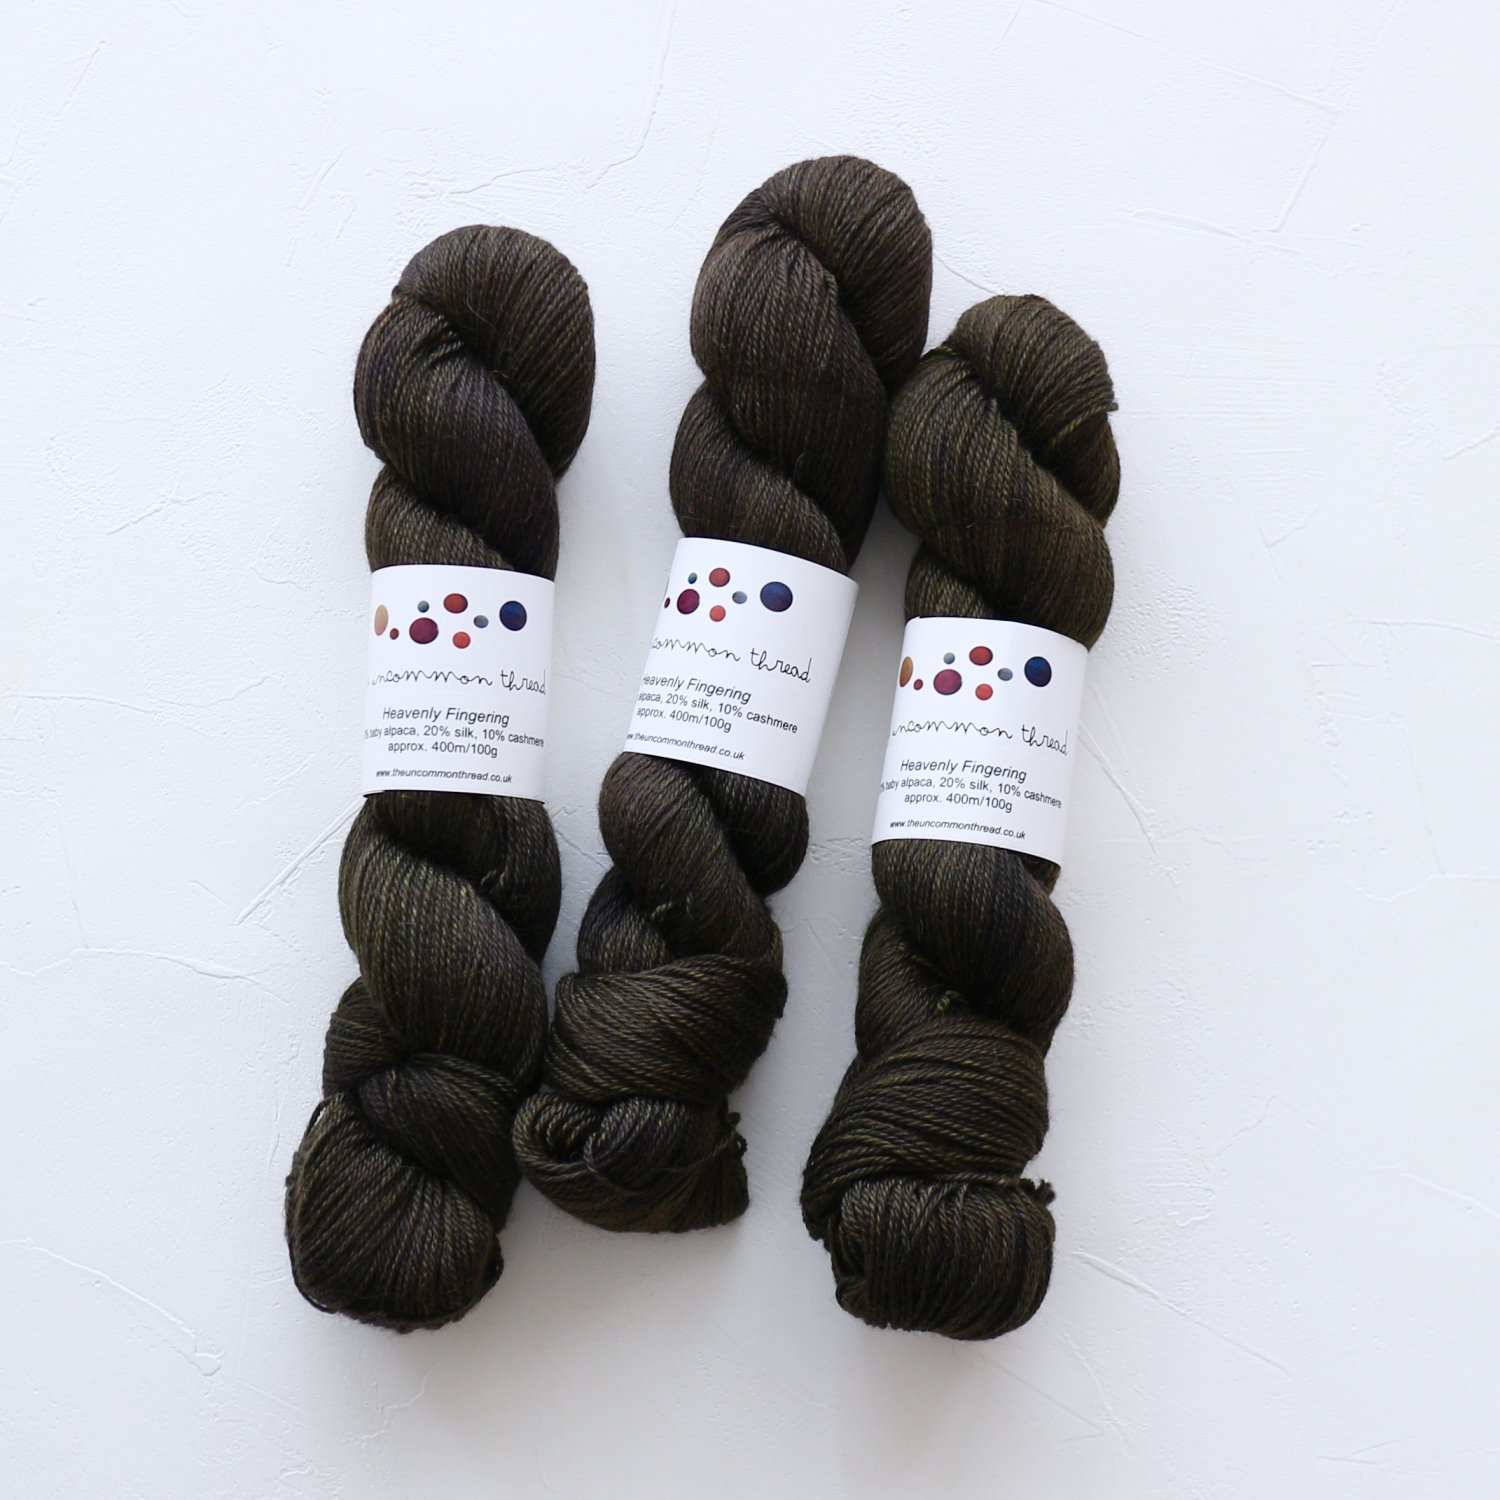 【The Uncommon Thread】<br>Heavenly Fingering<br>Hemlock